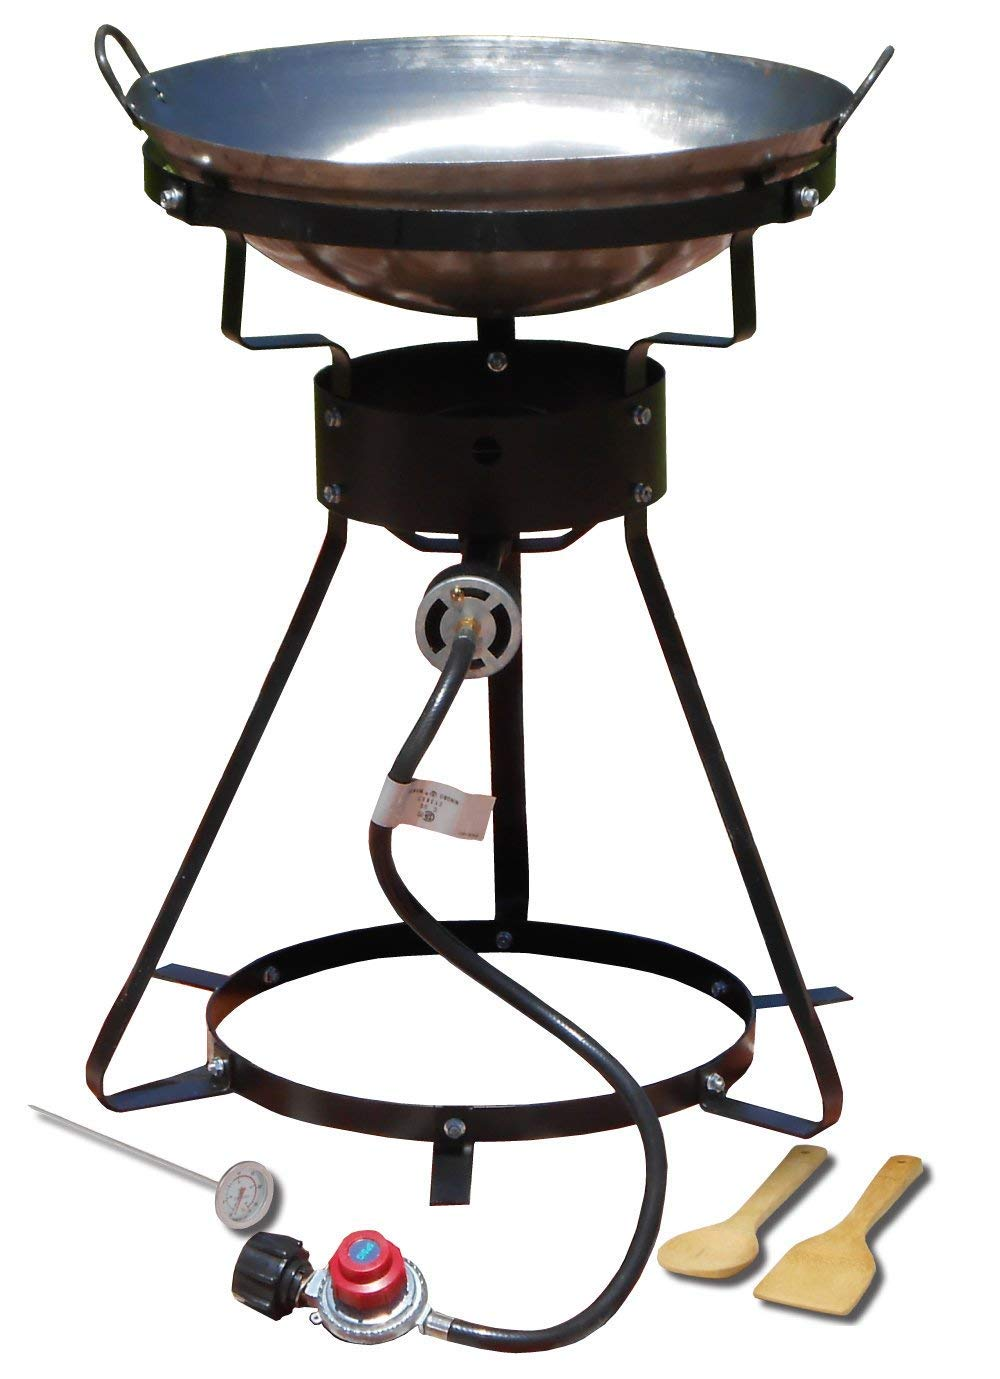 Jur_Global #24WC 24'' Portable Propane Outdoor Cooker with 18'' Steel Wok